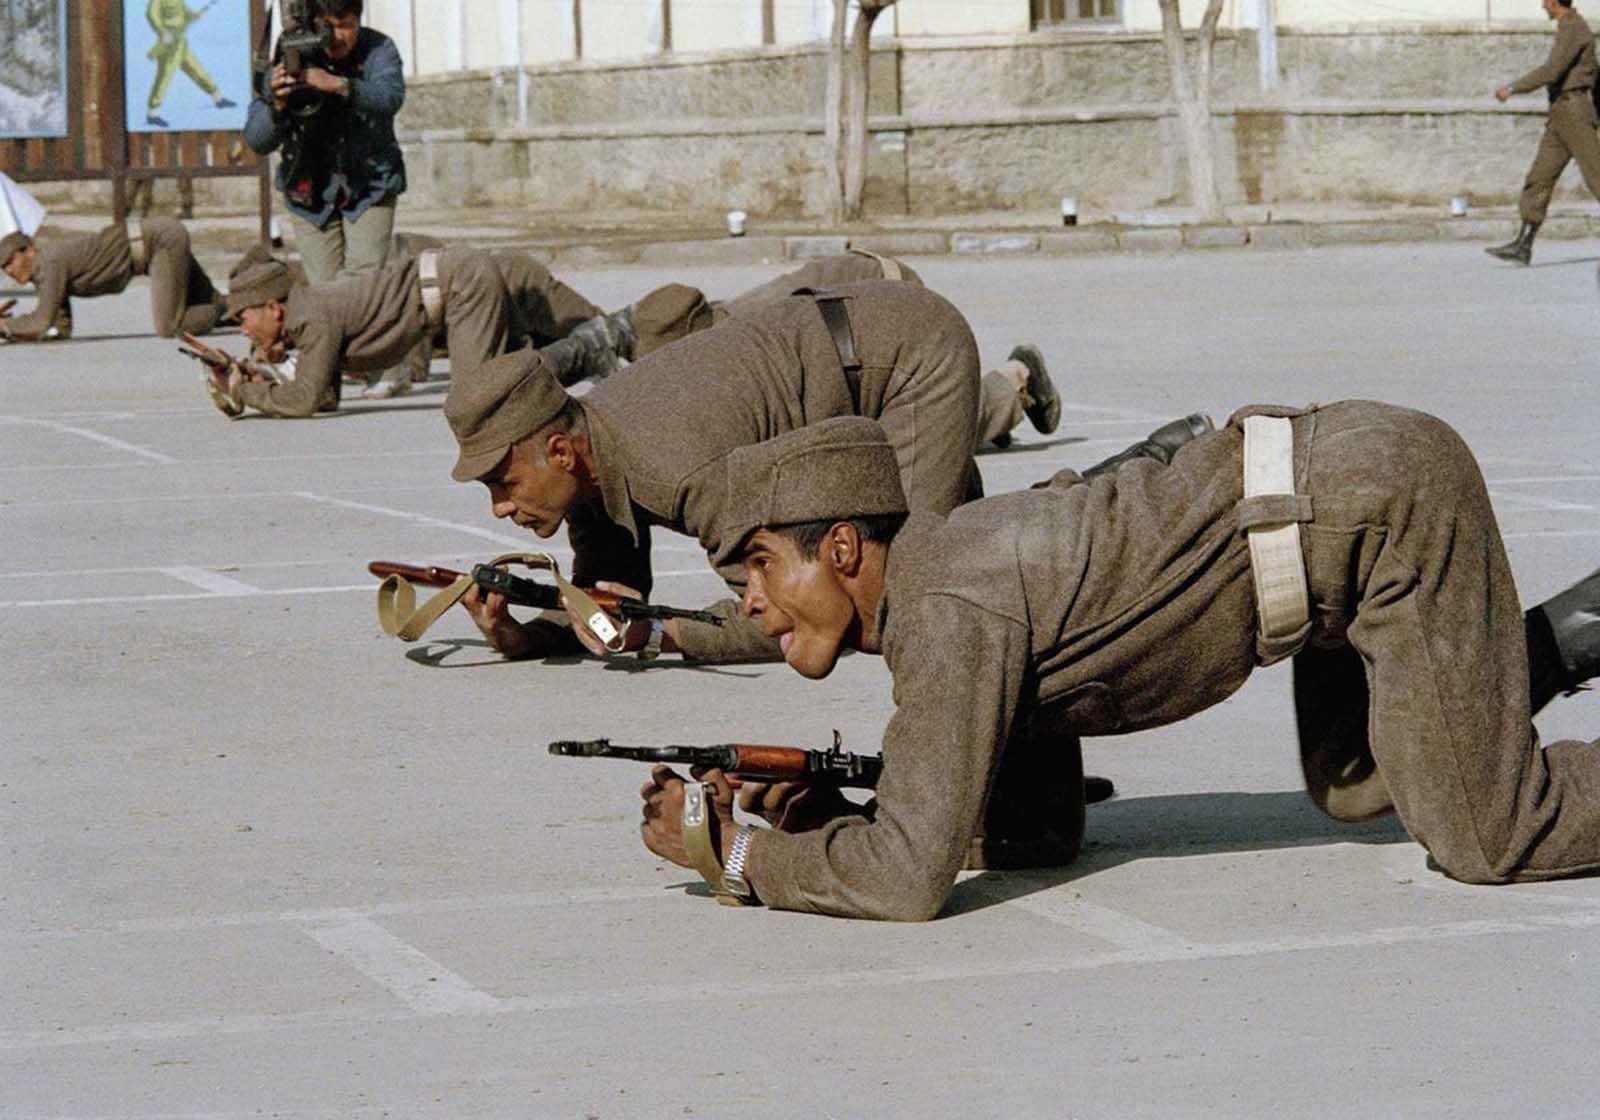 As the planned withdrawal of Soviet troops began, Afghan troops were trained and supplied to take their place. Here, a soldier crawls with his comrades, during a training session in Kabul on February 8, 1989. According to officials, the soldiers were from a new unit formed to defend vital installations in the Afghan capital.